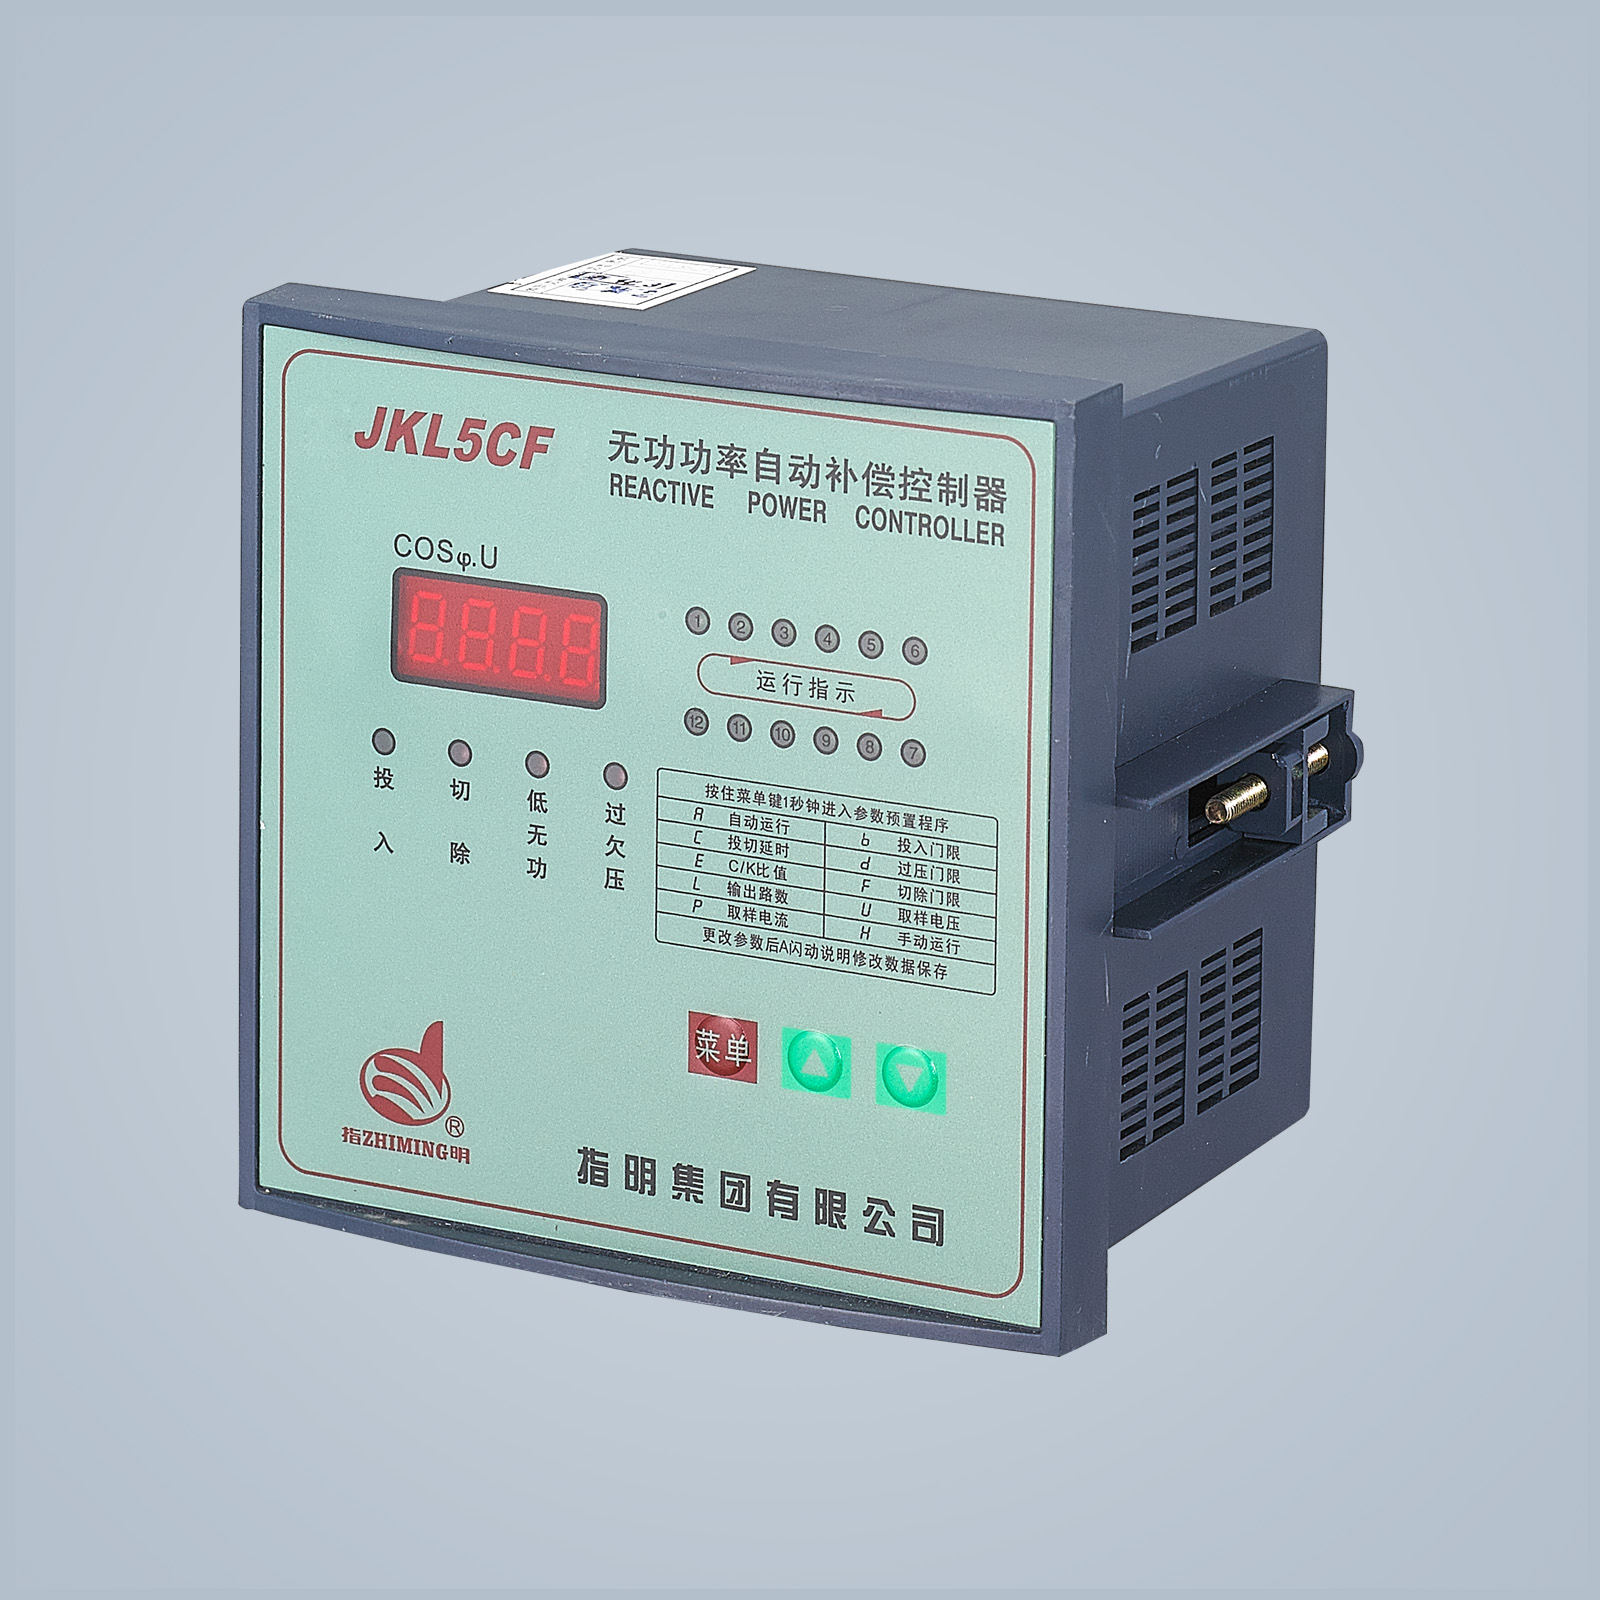 JKL5CF  Series Reactive power auto-compen sation controller 380V